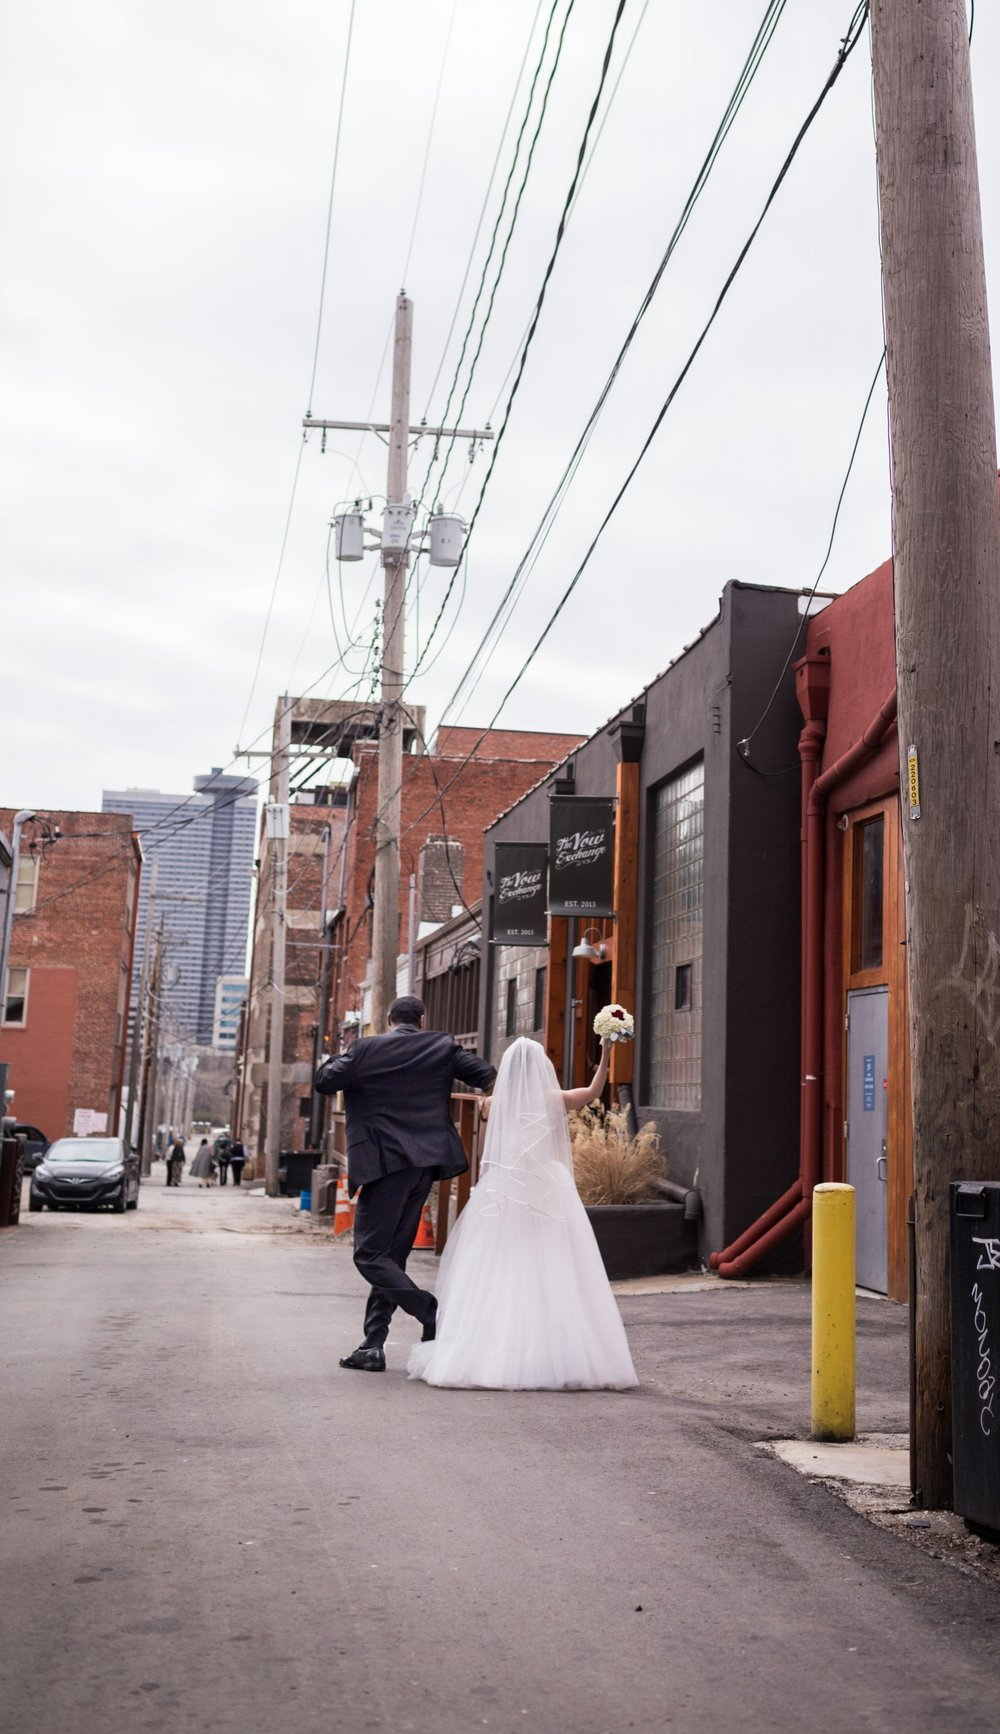 Kansas_City_Small_Wedding_Venue_Elope_Intimate_Ceremony_Budget_Affordable_15MinWedding-180.jpg